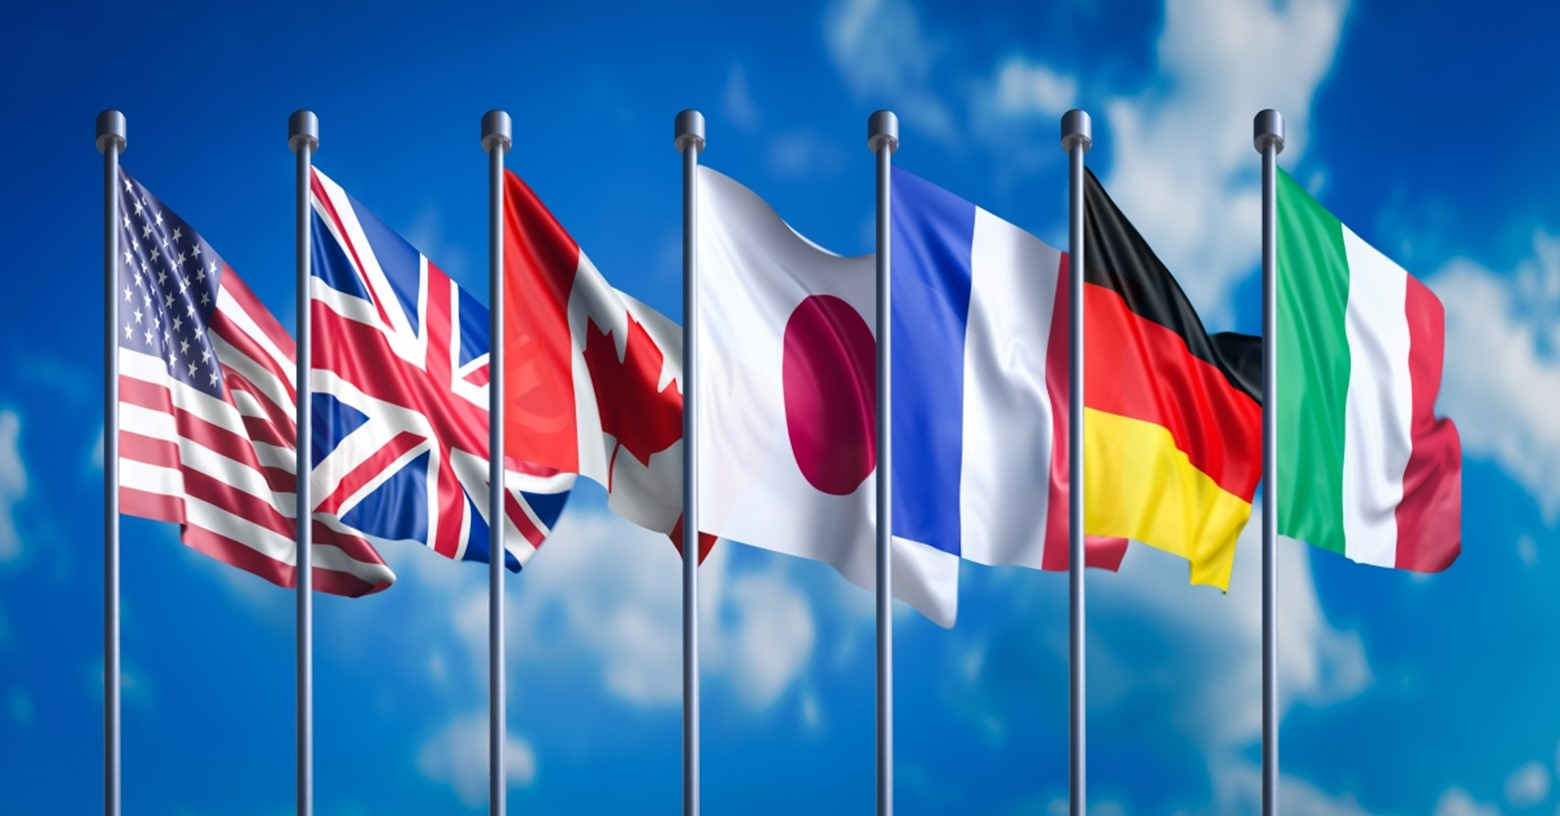 G7 countries's flags